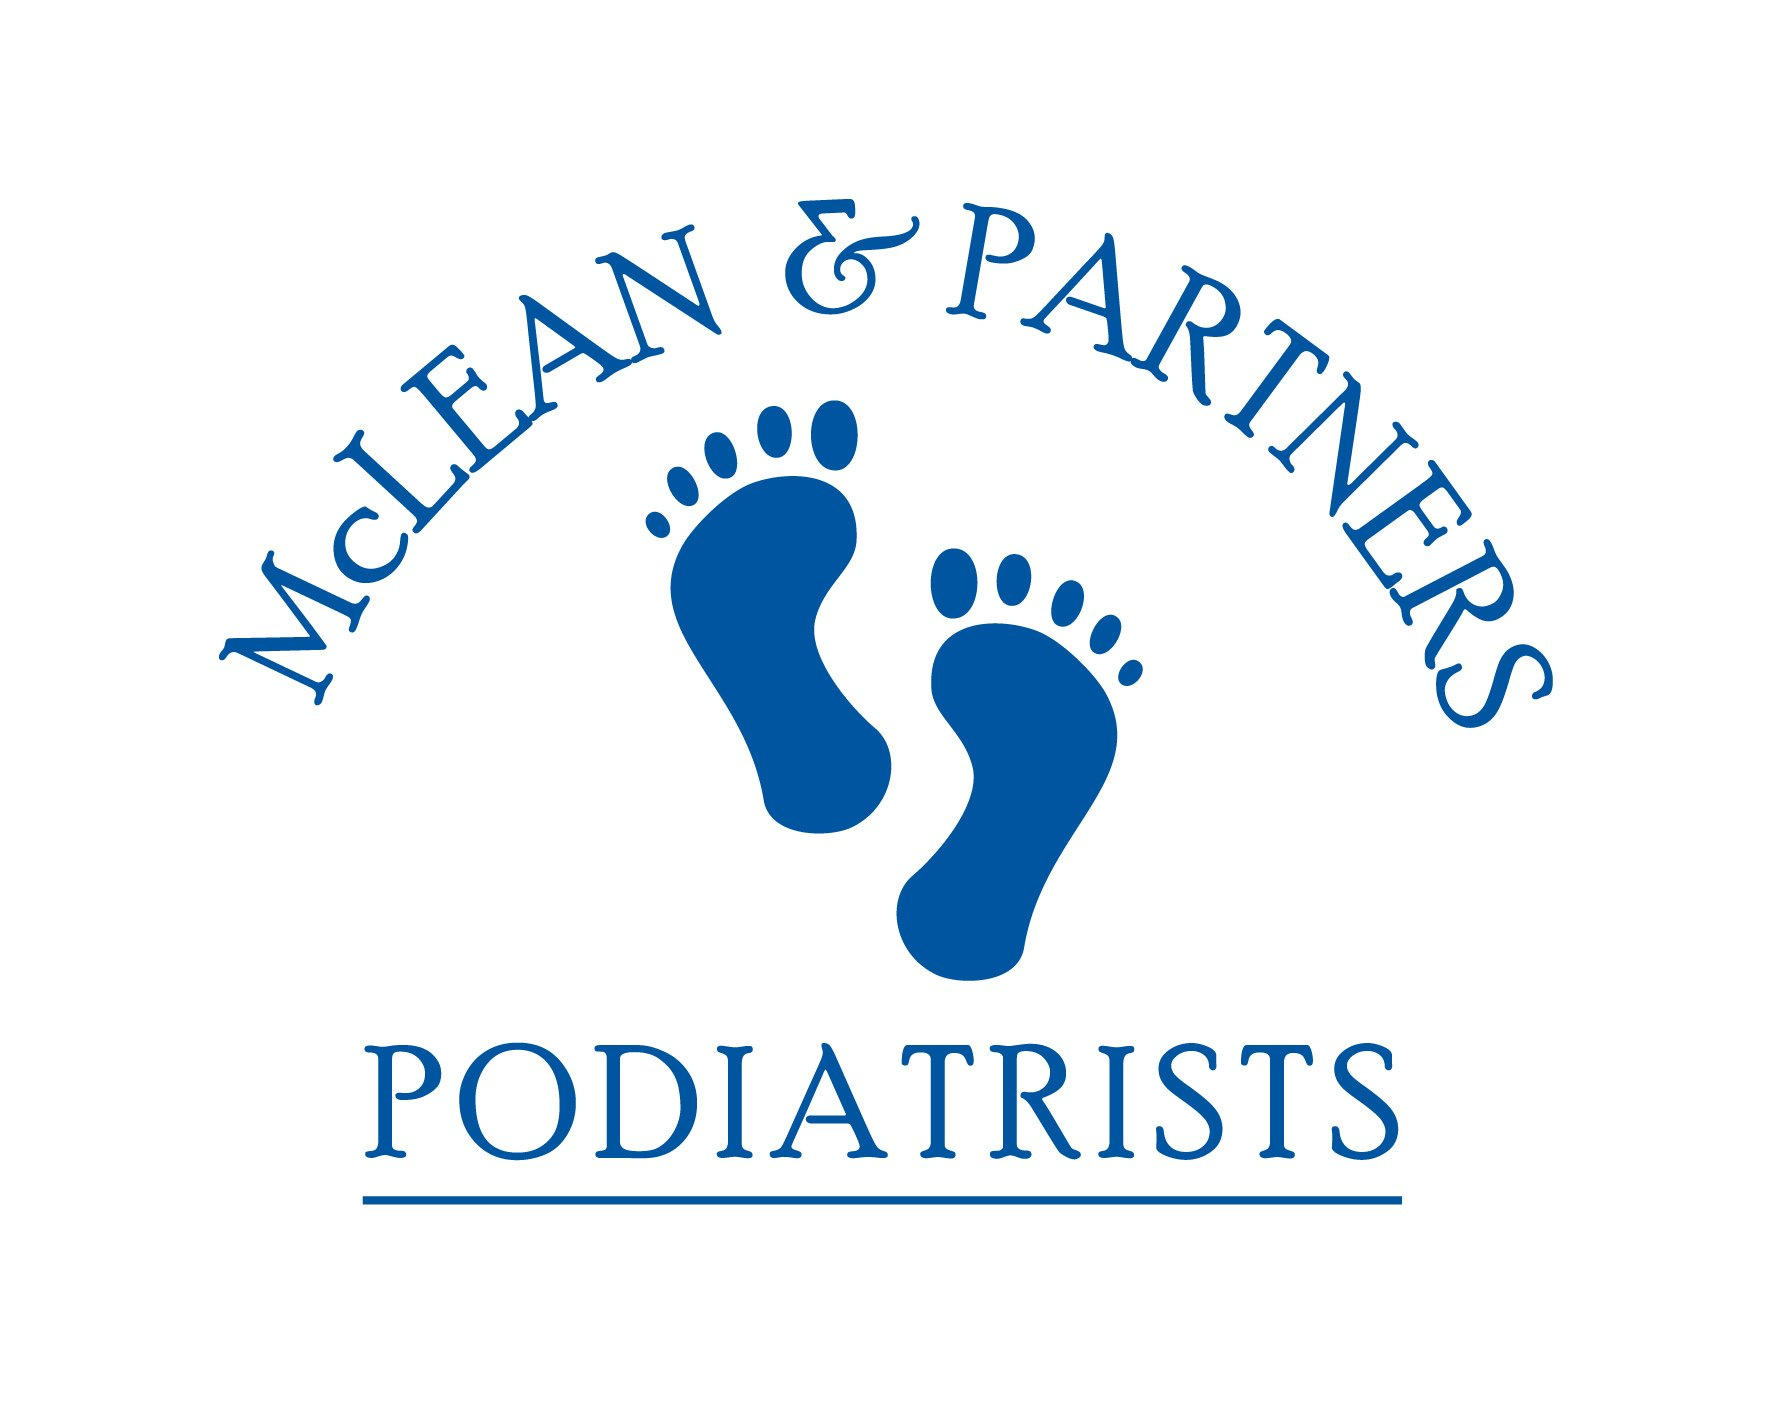 McLean and Partners logo banner